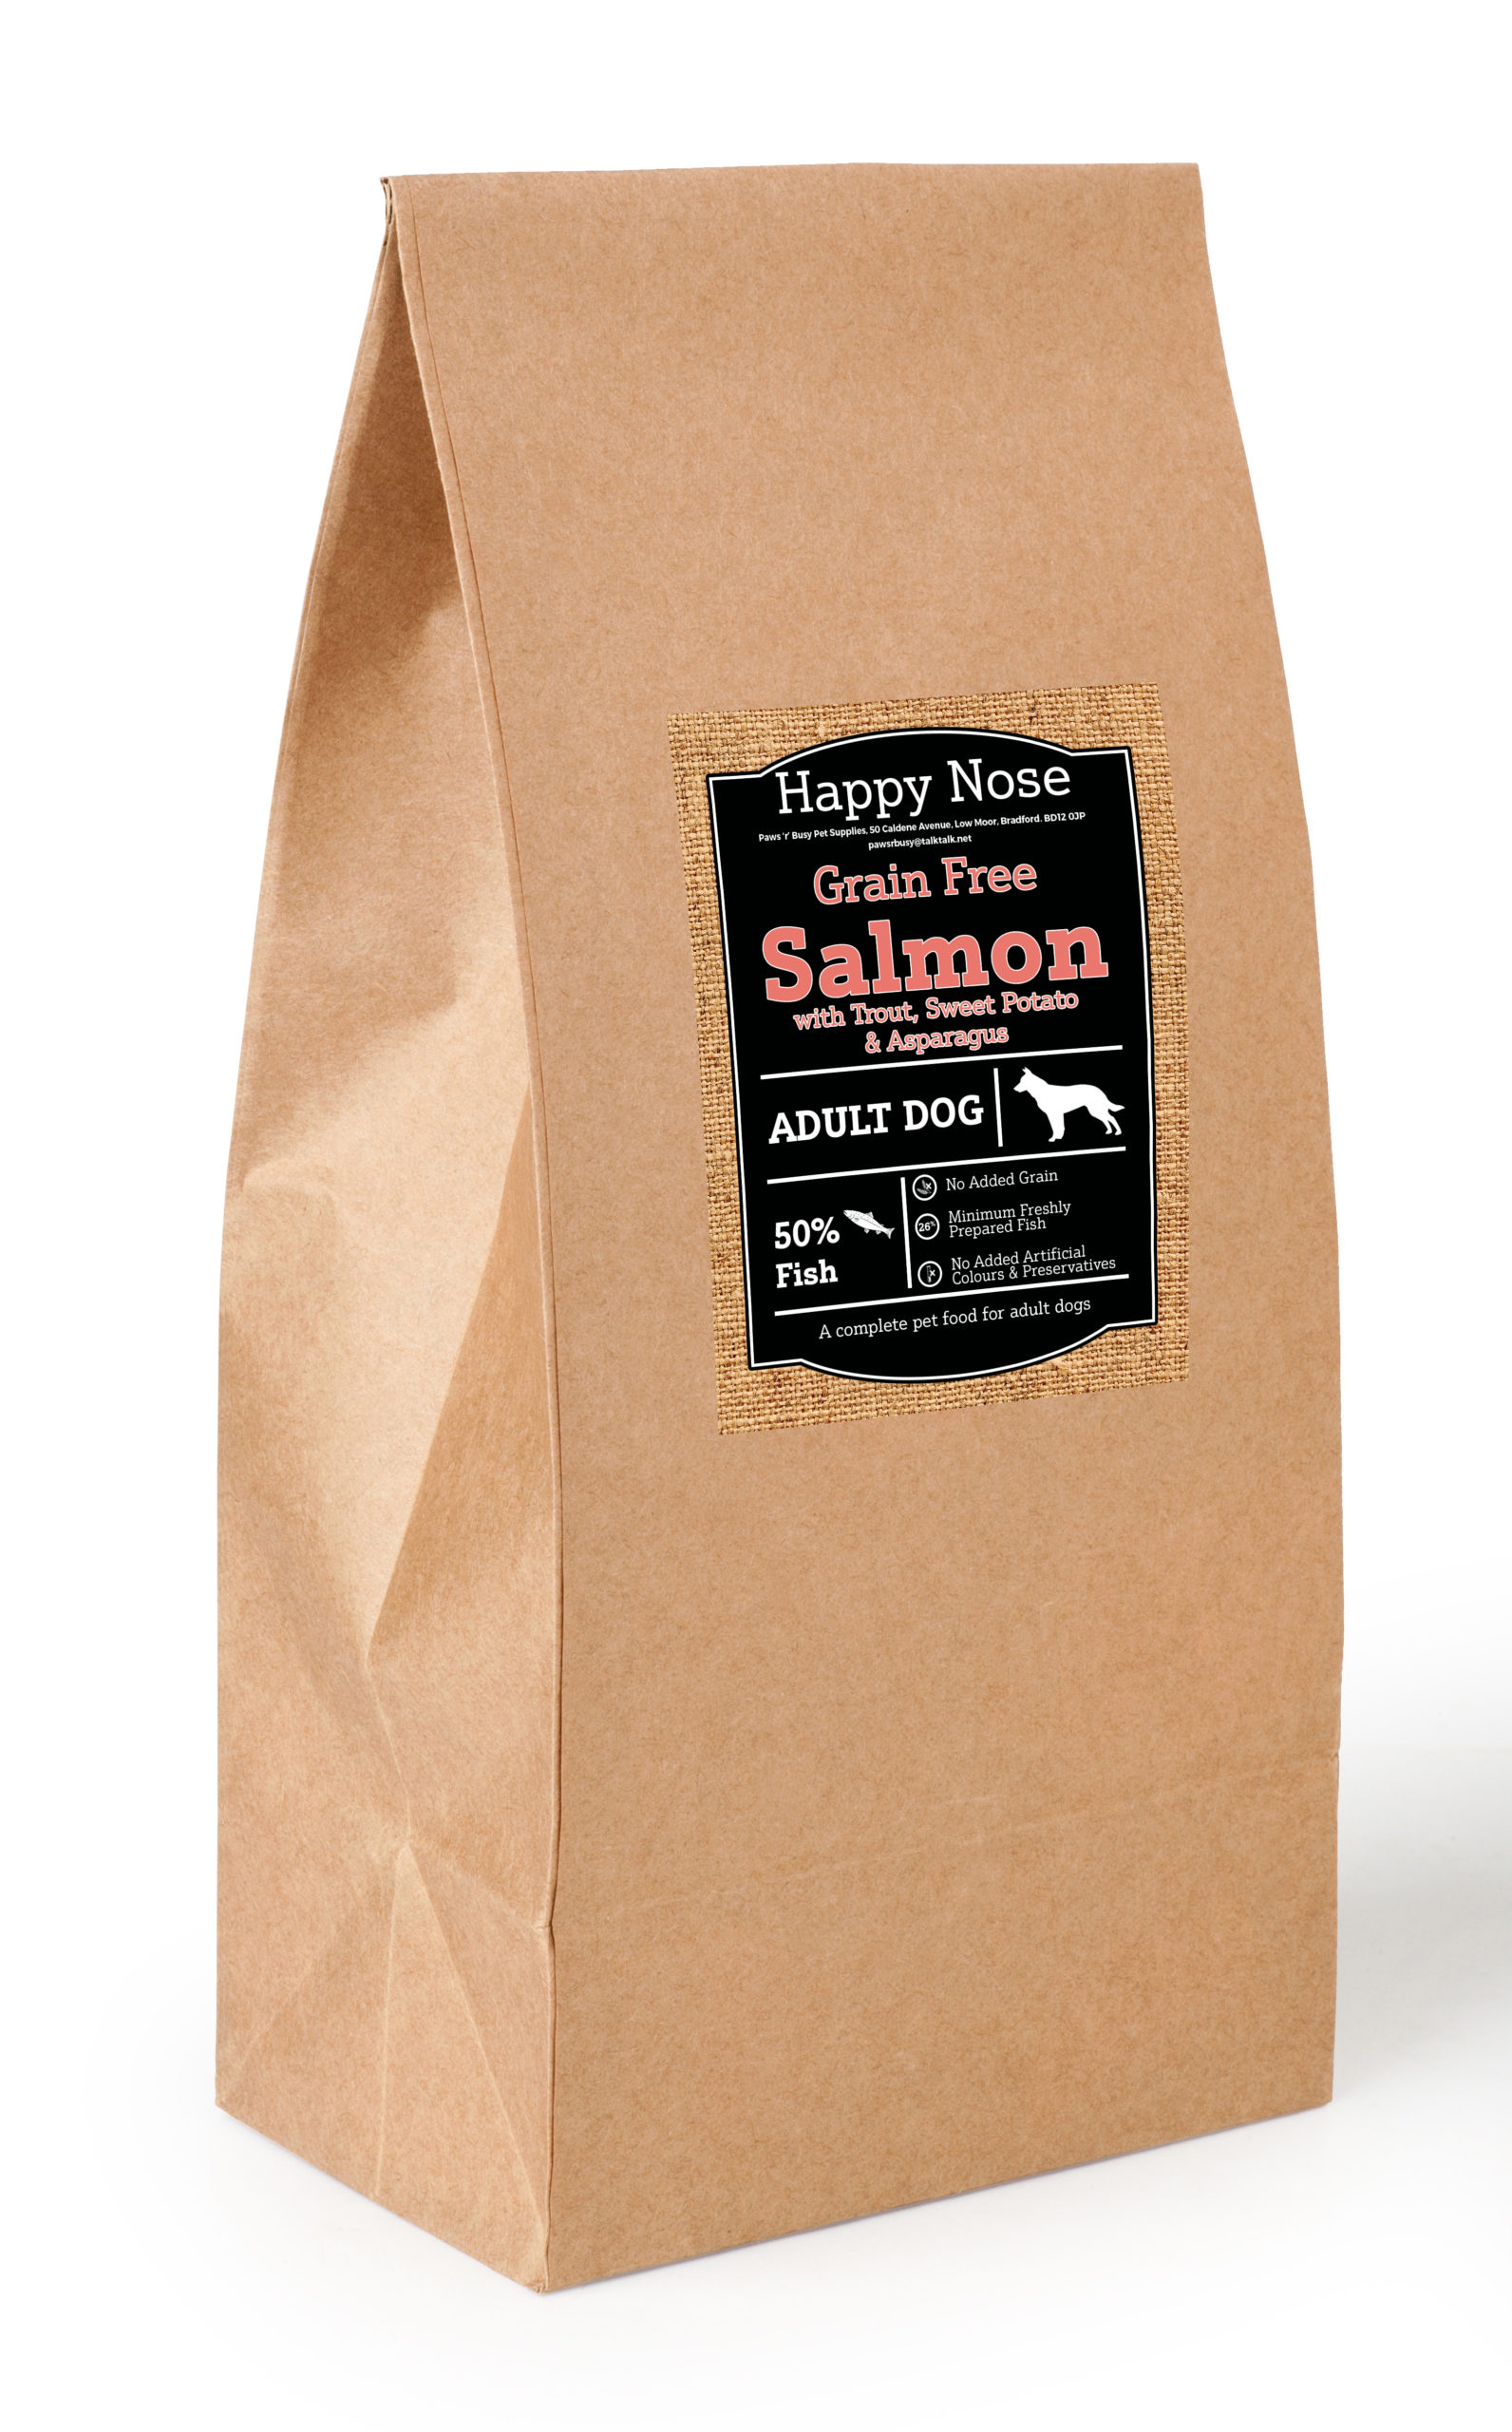 Sample Packs – 2 X 100g Grain Free Salmon, Trout Adult